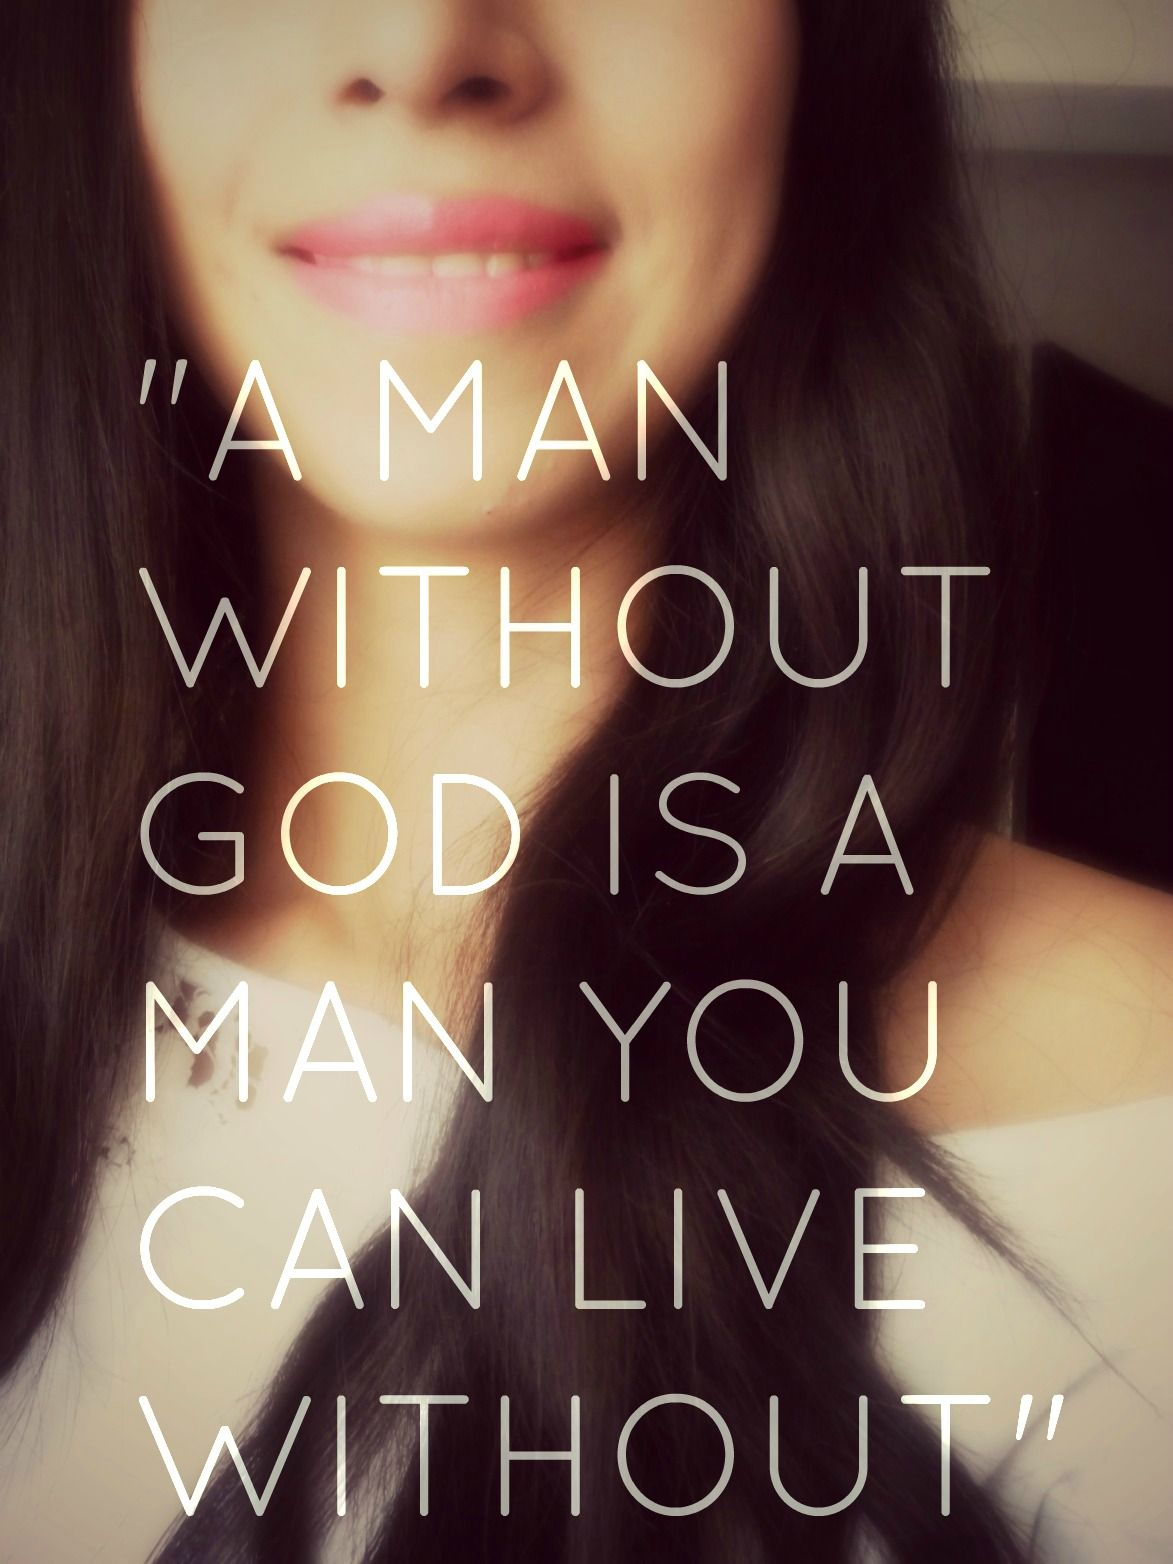 A Man Without God Is A Man You Can Live Without Words Of Wisdom Sayings Quotes